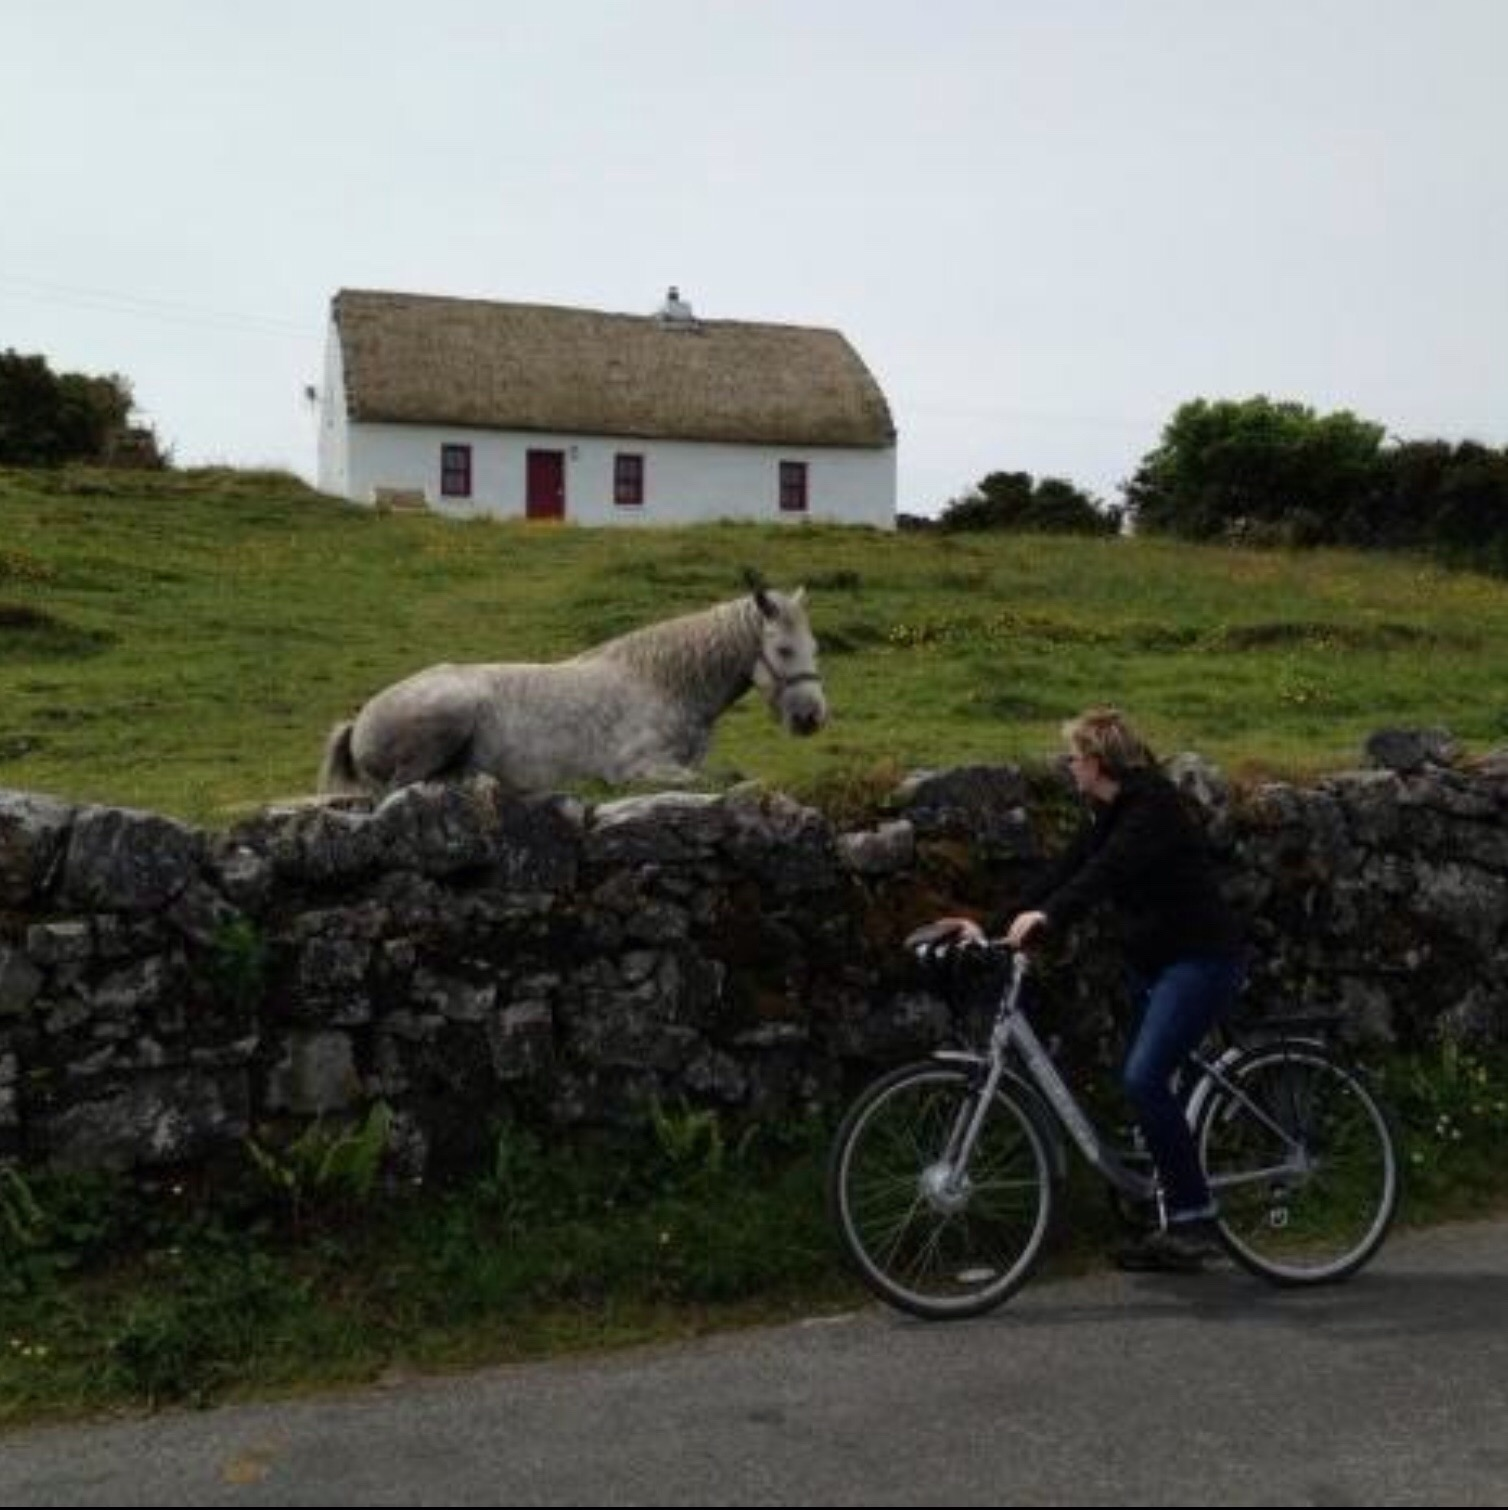 Meg stops to say hello to a horse in Ireland.